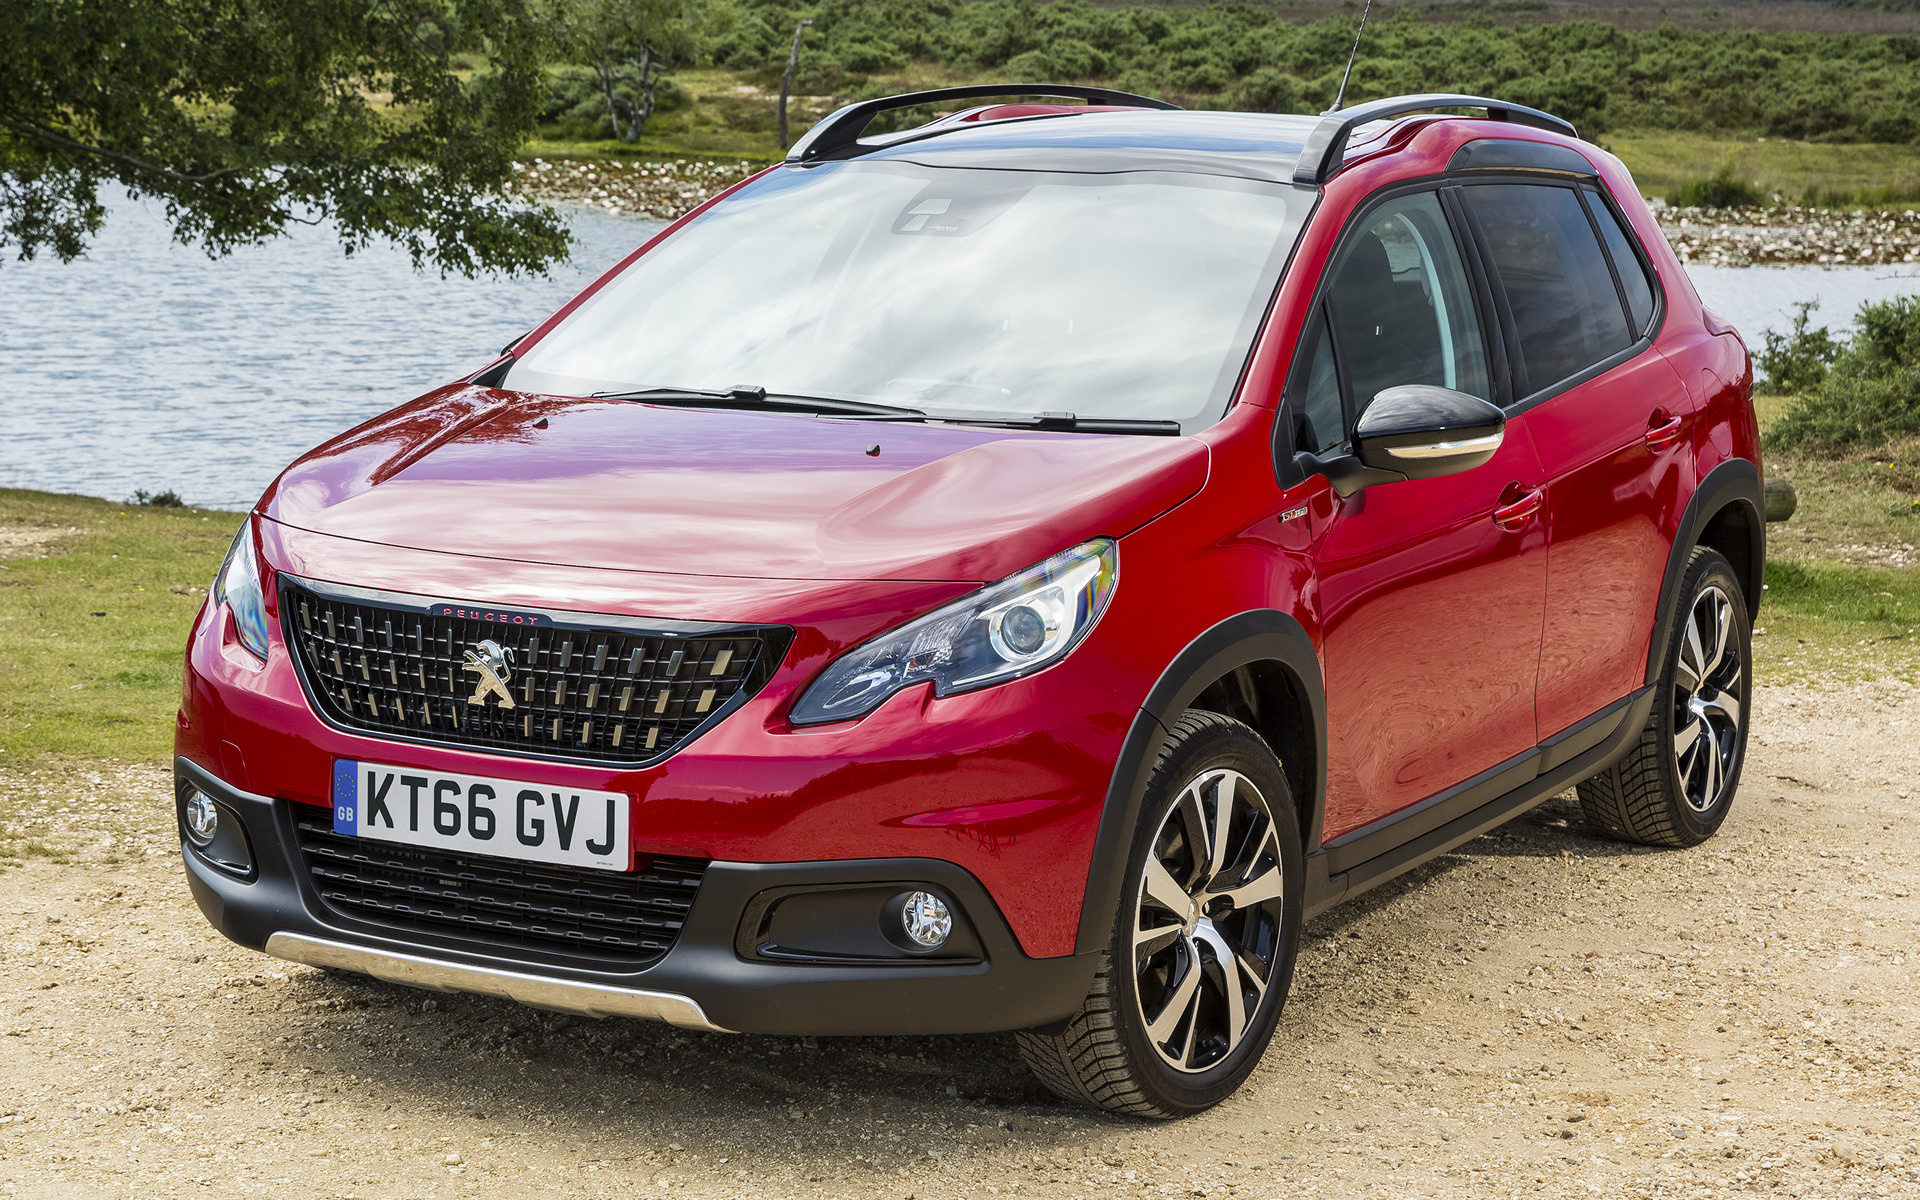 2016 Peugeot 2008 GT Line (UK) - Wallpapers and HD Images ...